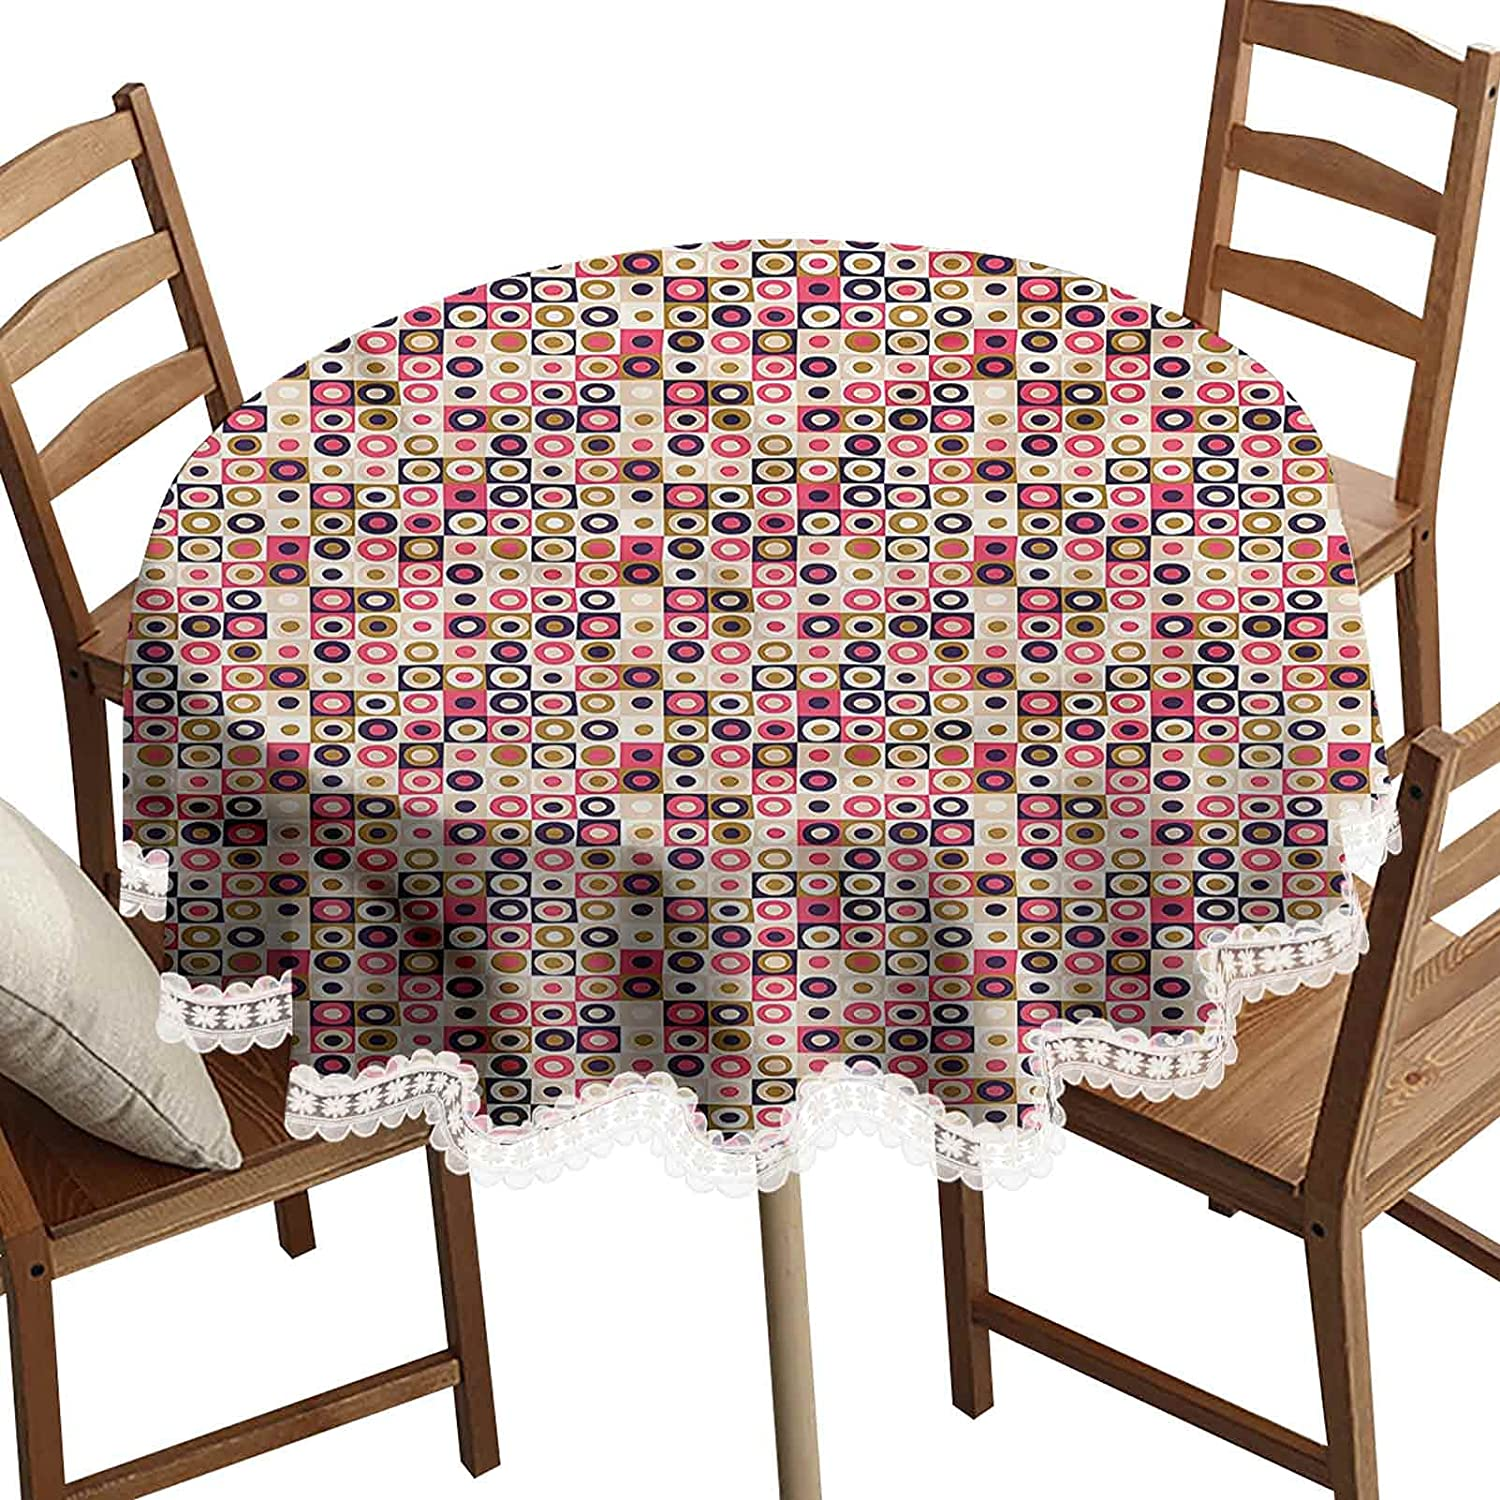 SoSung Geometric Round Decorative Tablecloth, Grid Design Squares Washable Polyester Lace Edge Table Covers, Diameter 48 Inch, for Kitchen Dinner Wedding Party Banquet Decoration